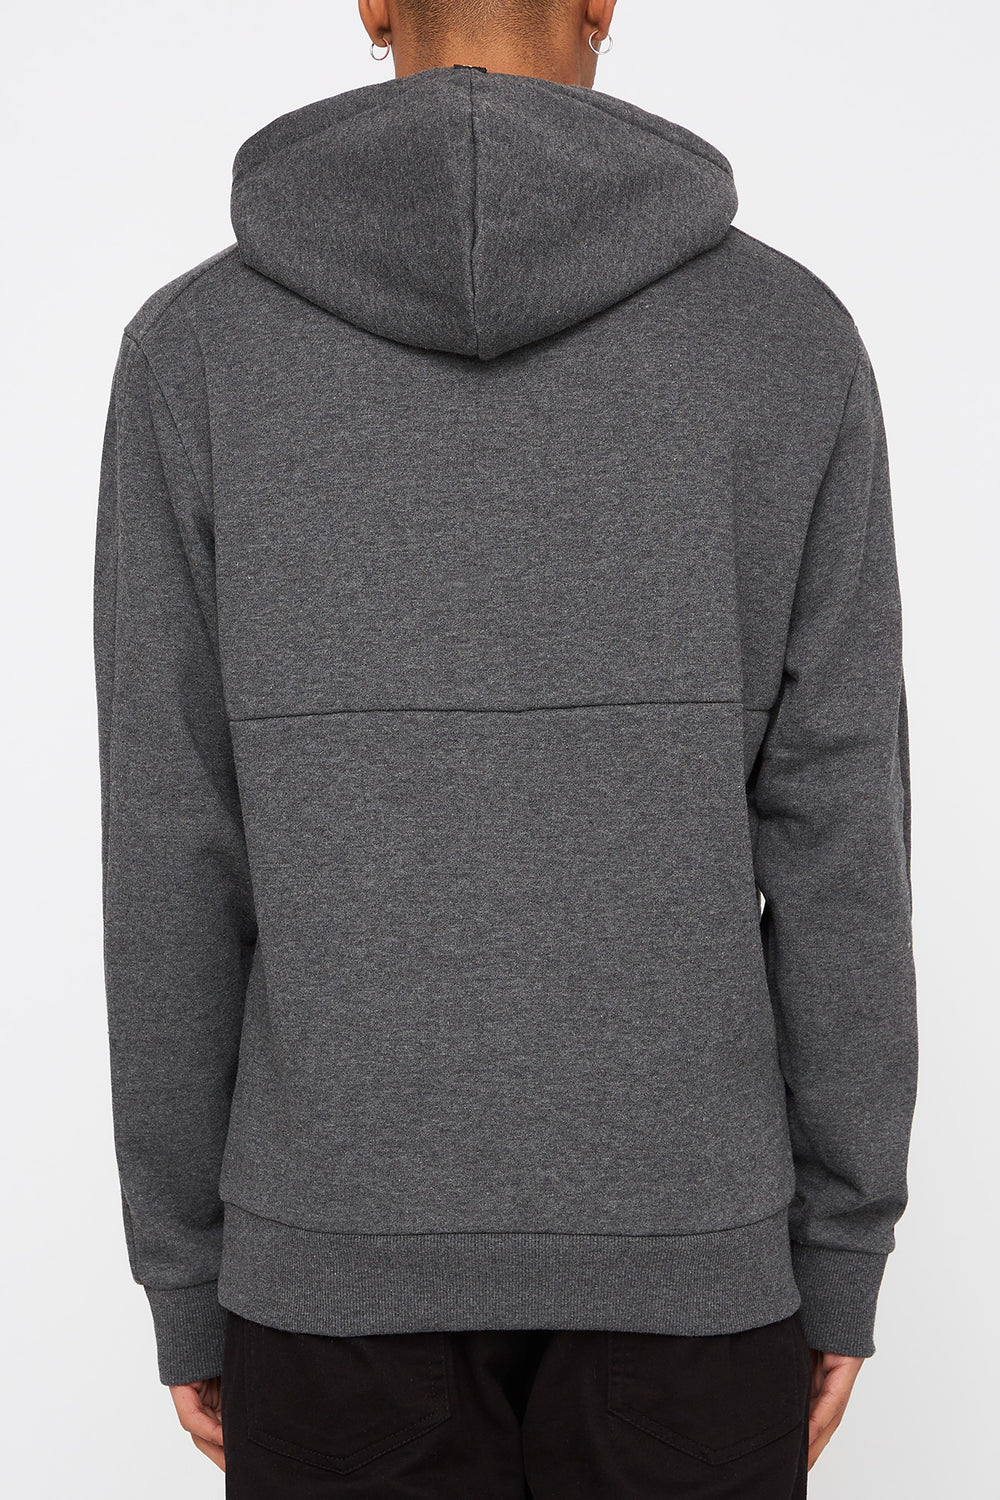 Zoo York Mens Embroidered Logo Hoodie Charcoal